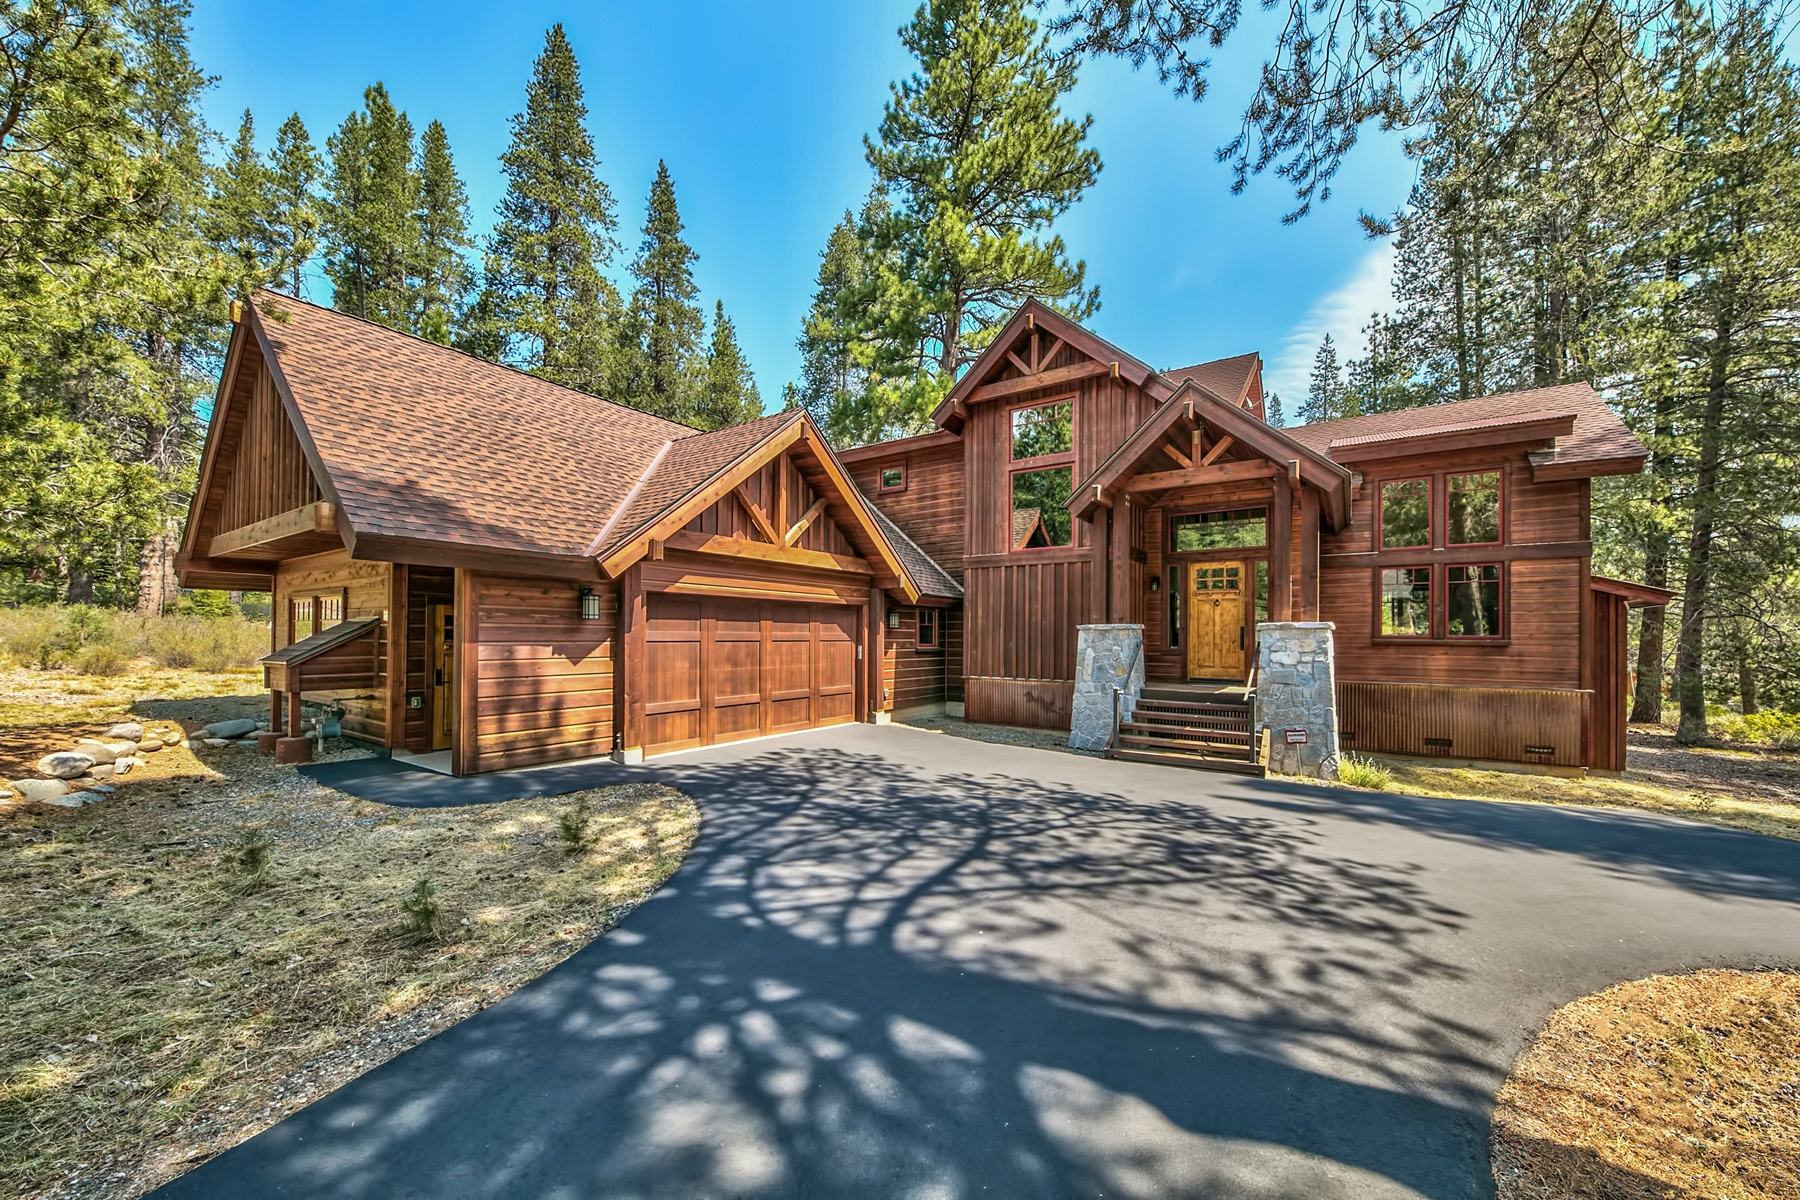 Single Family Home for Active at 11891 Bottcher Loop, Truckee, CA 96161 11891 Bottcher Loop Truckee, California 96161 United States